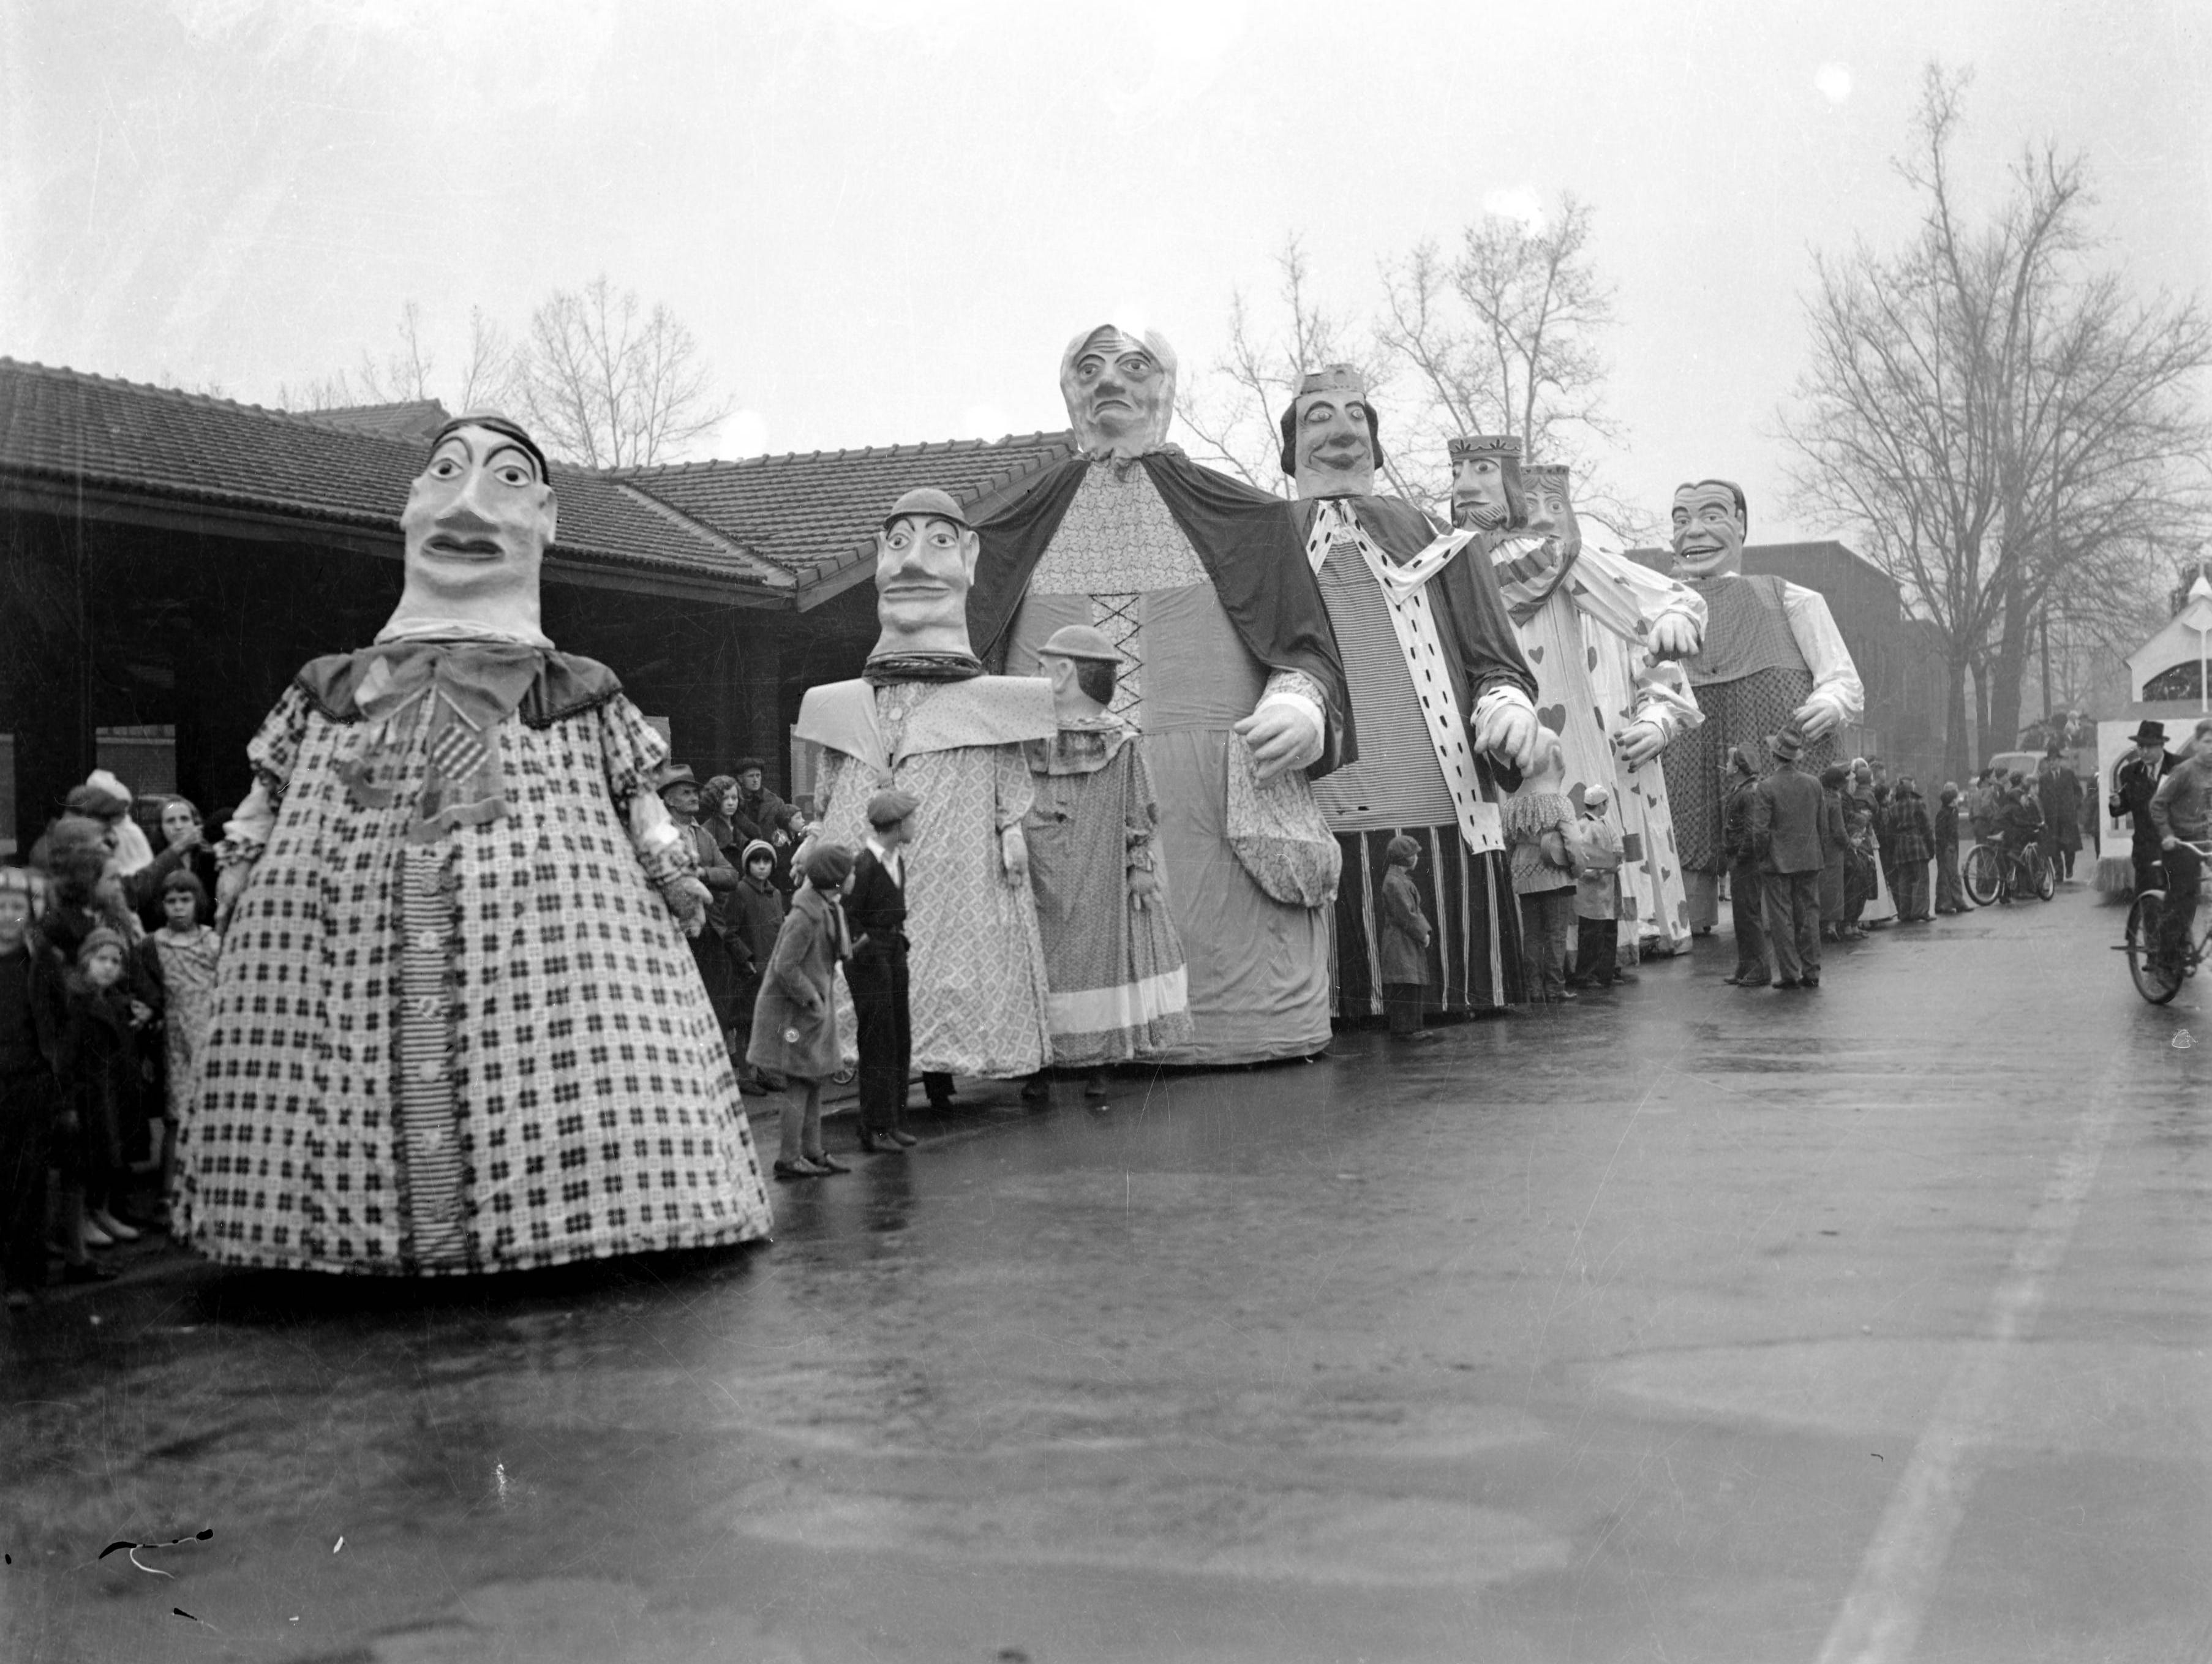 WPA Christmas Parade floats--7 tall figures lined up, Jack-in-the-Box figure, with children on street among figures, and man with cane possibly directing the parade.  Crowd on sidewalk watching.  This is probably taken at the Municipal Market at 813 Pennsylvania St., side entrance at 814 W. Indiana St. (not sure which side shown) in 1939.